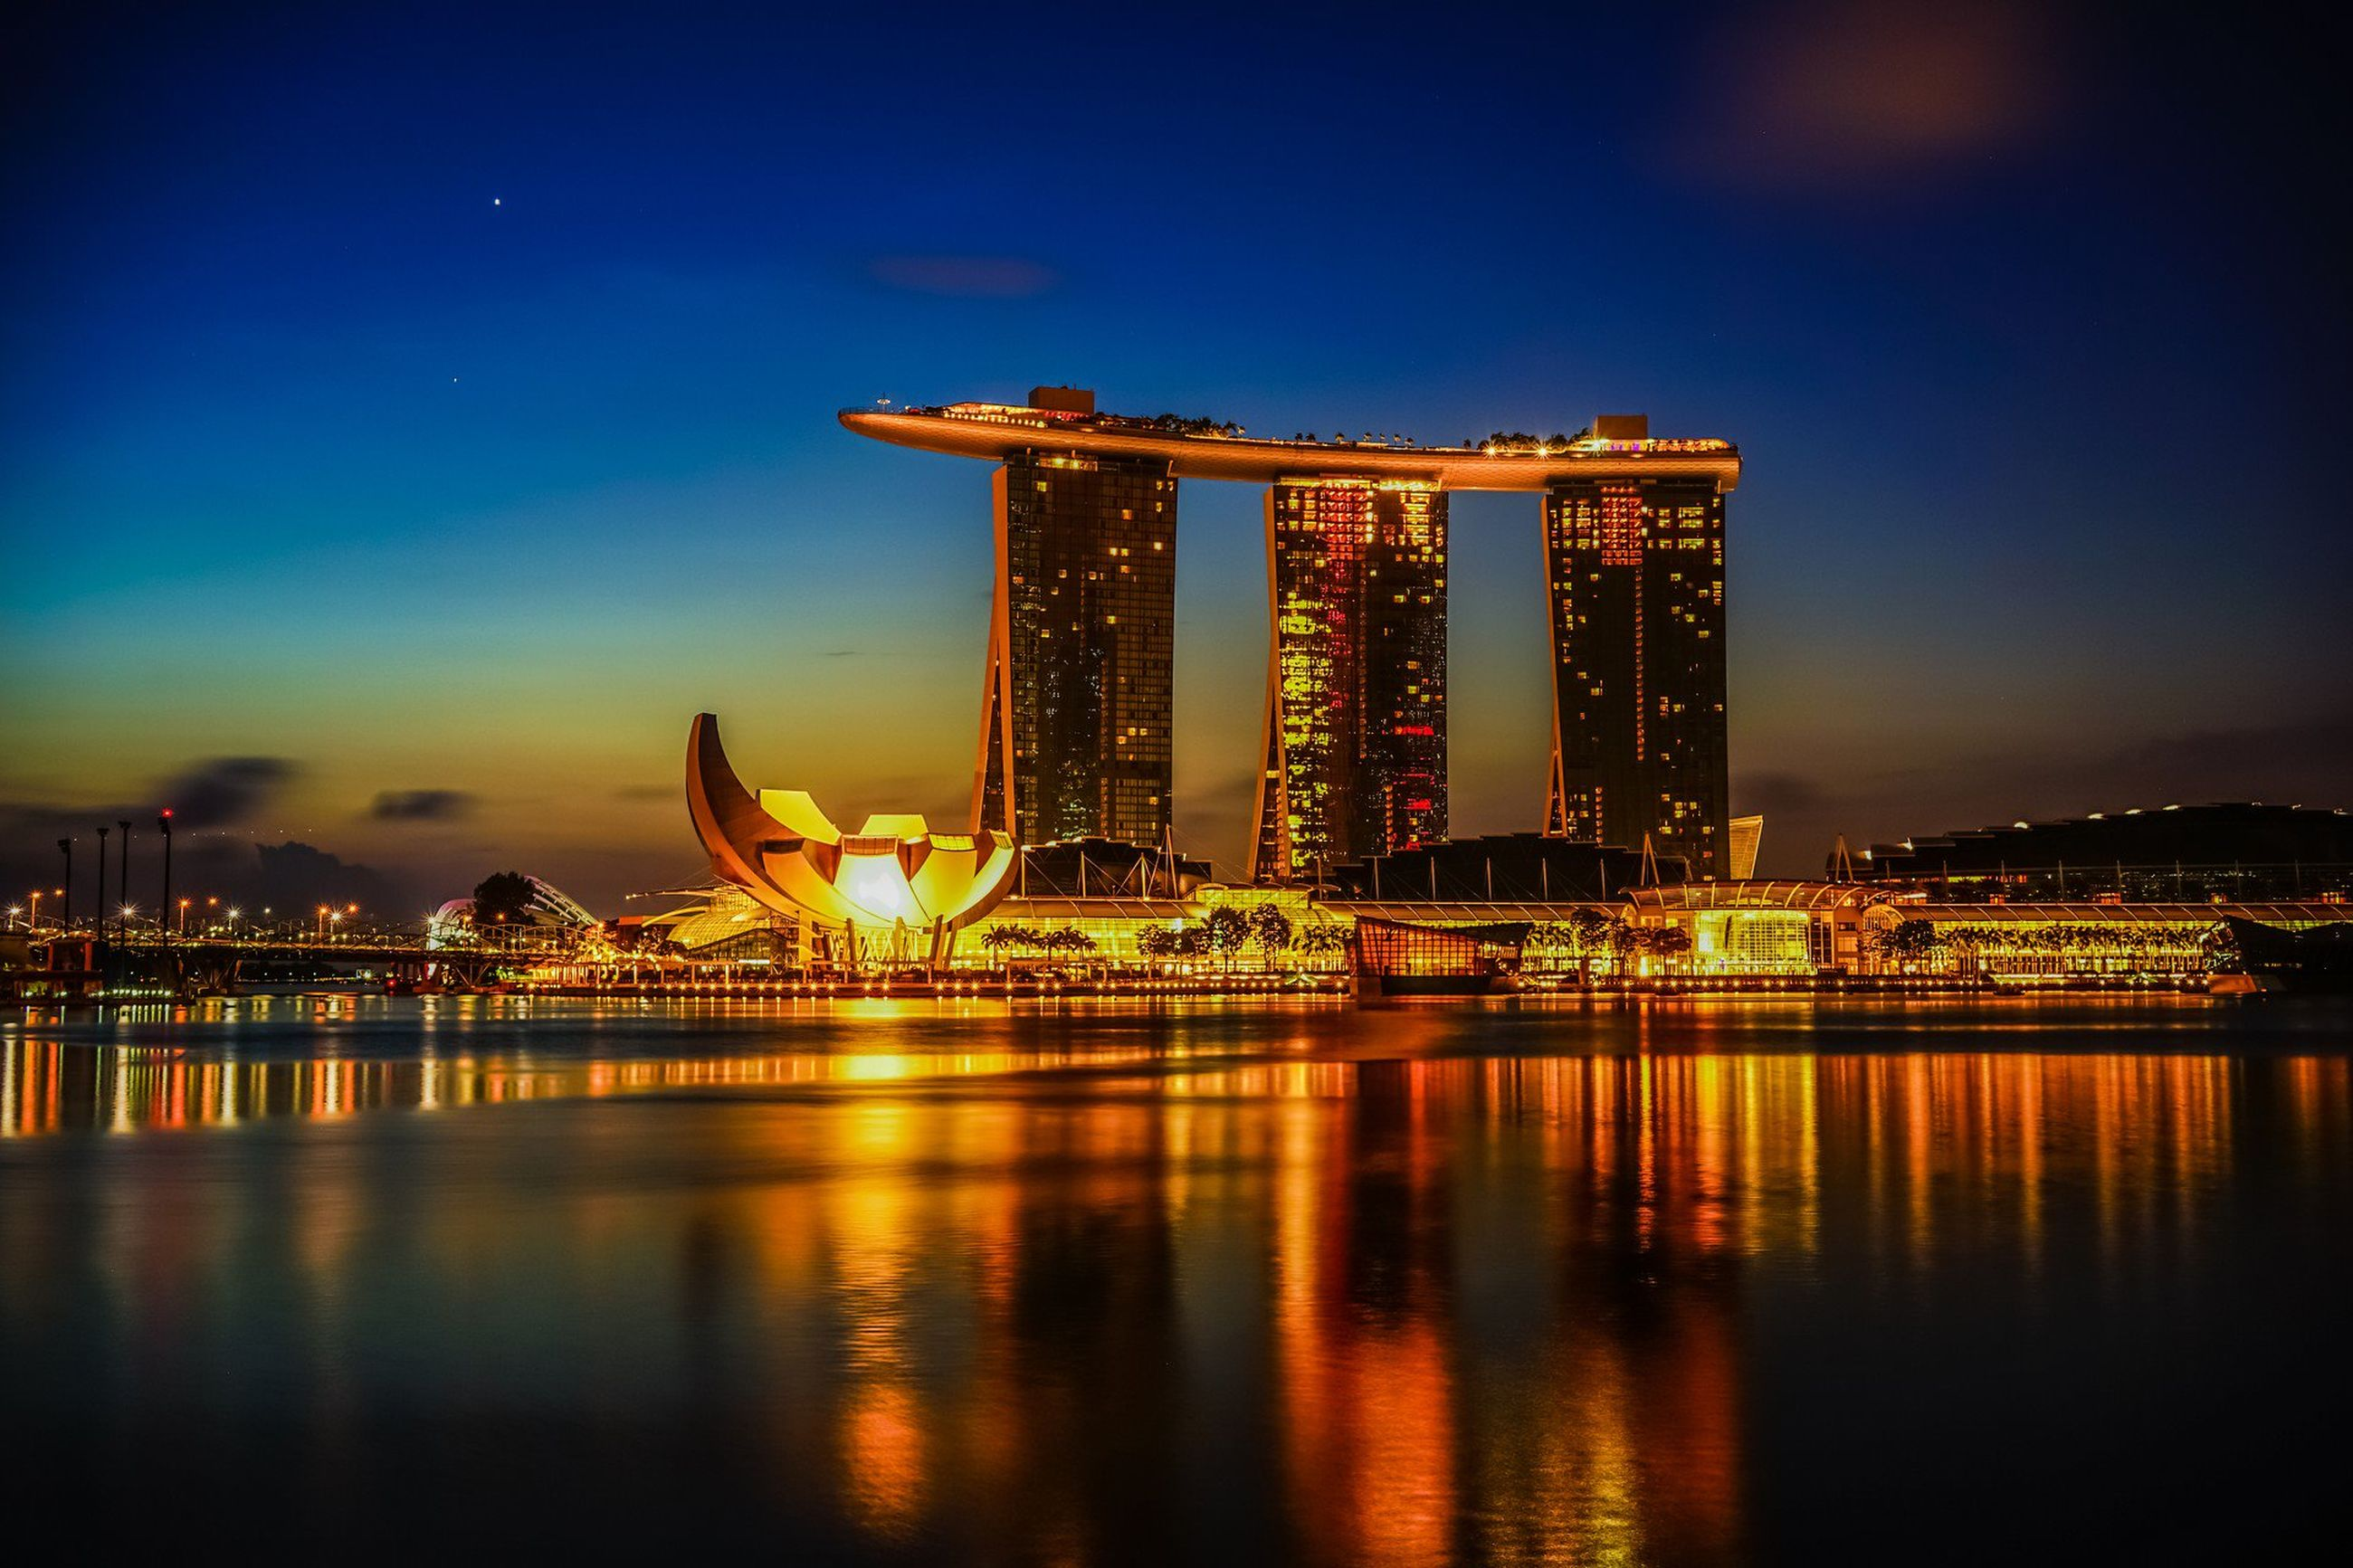 illuminated, night, water, architecture, built structure, reflection, waterfront, sky, river, bridge - man made structure, travel destinations, connection, city, famous place, dusk, building exterior, engineering, travel, capital cities, tourism